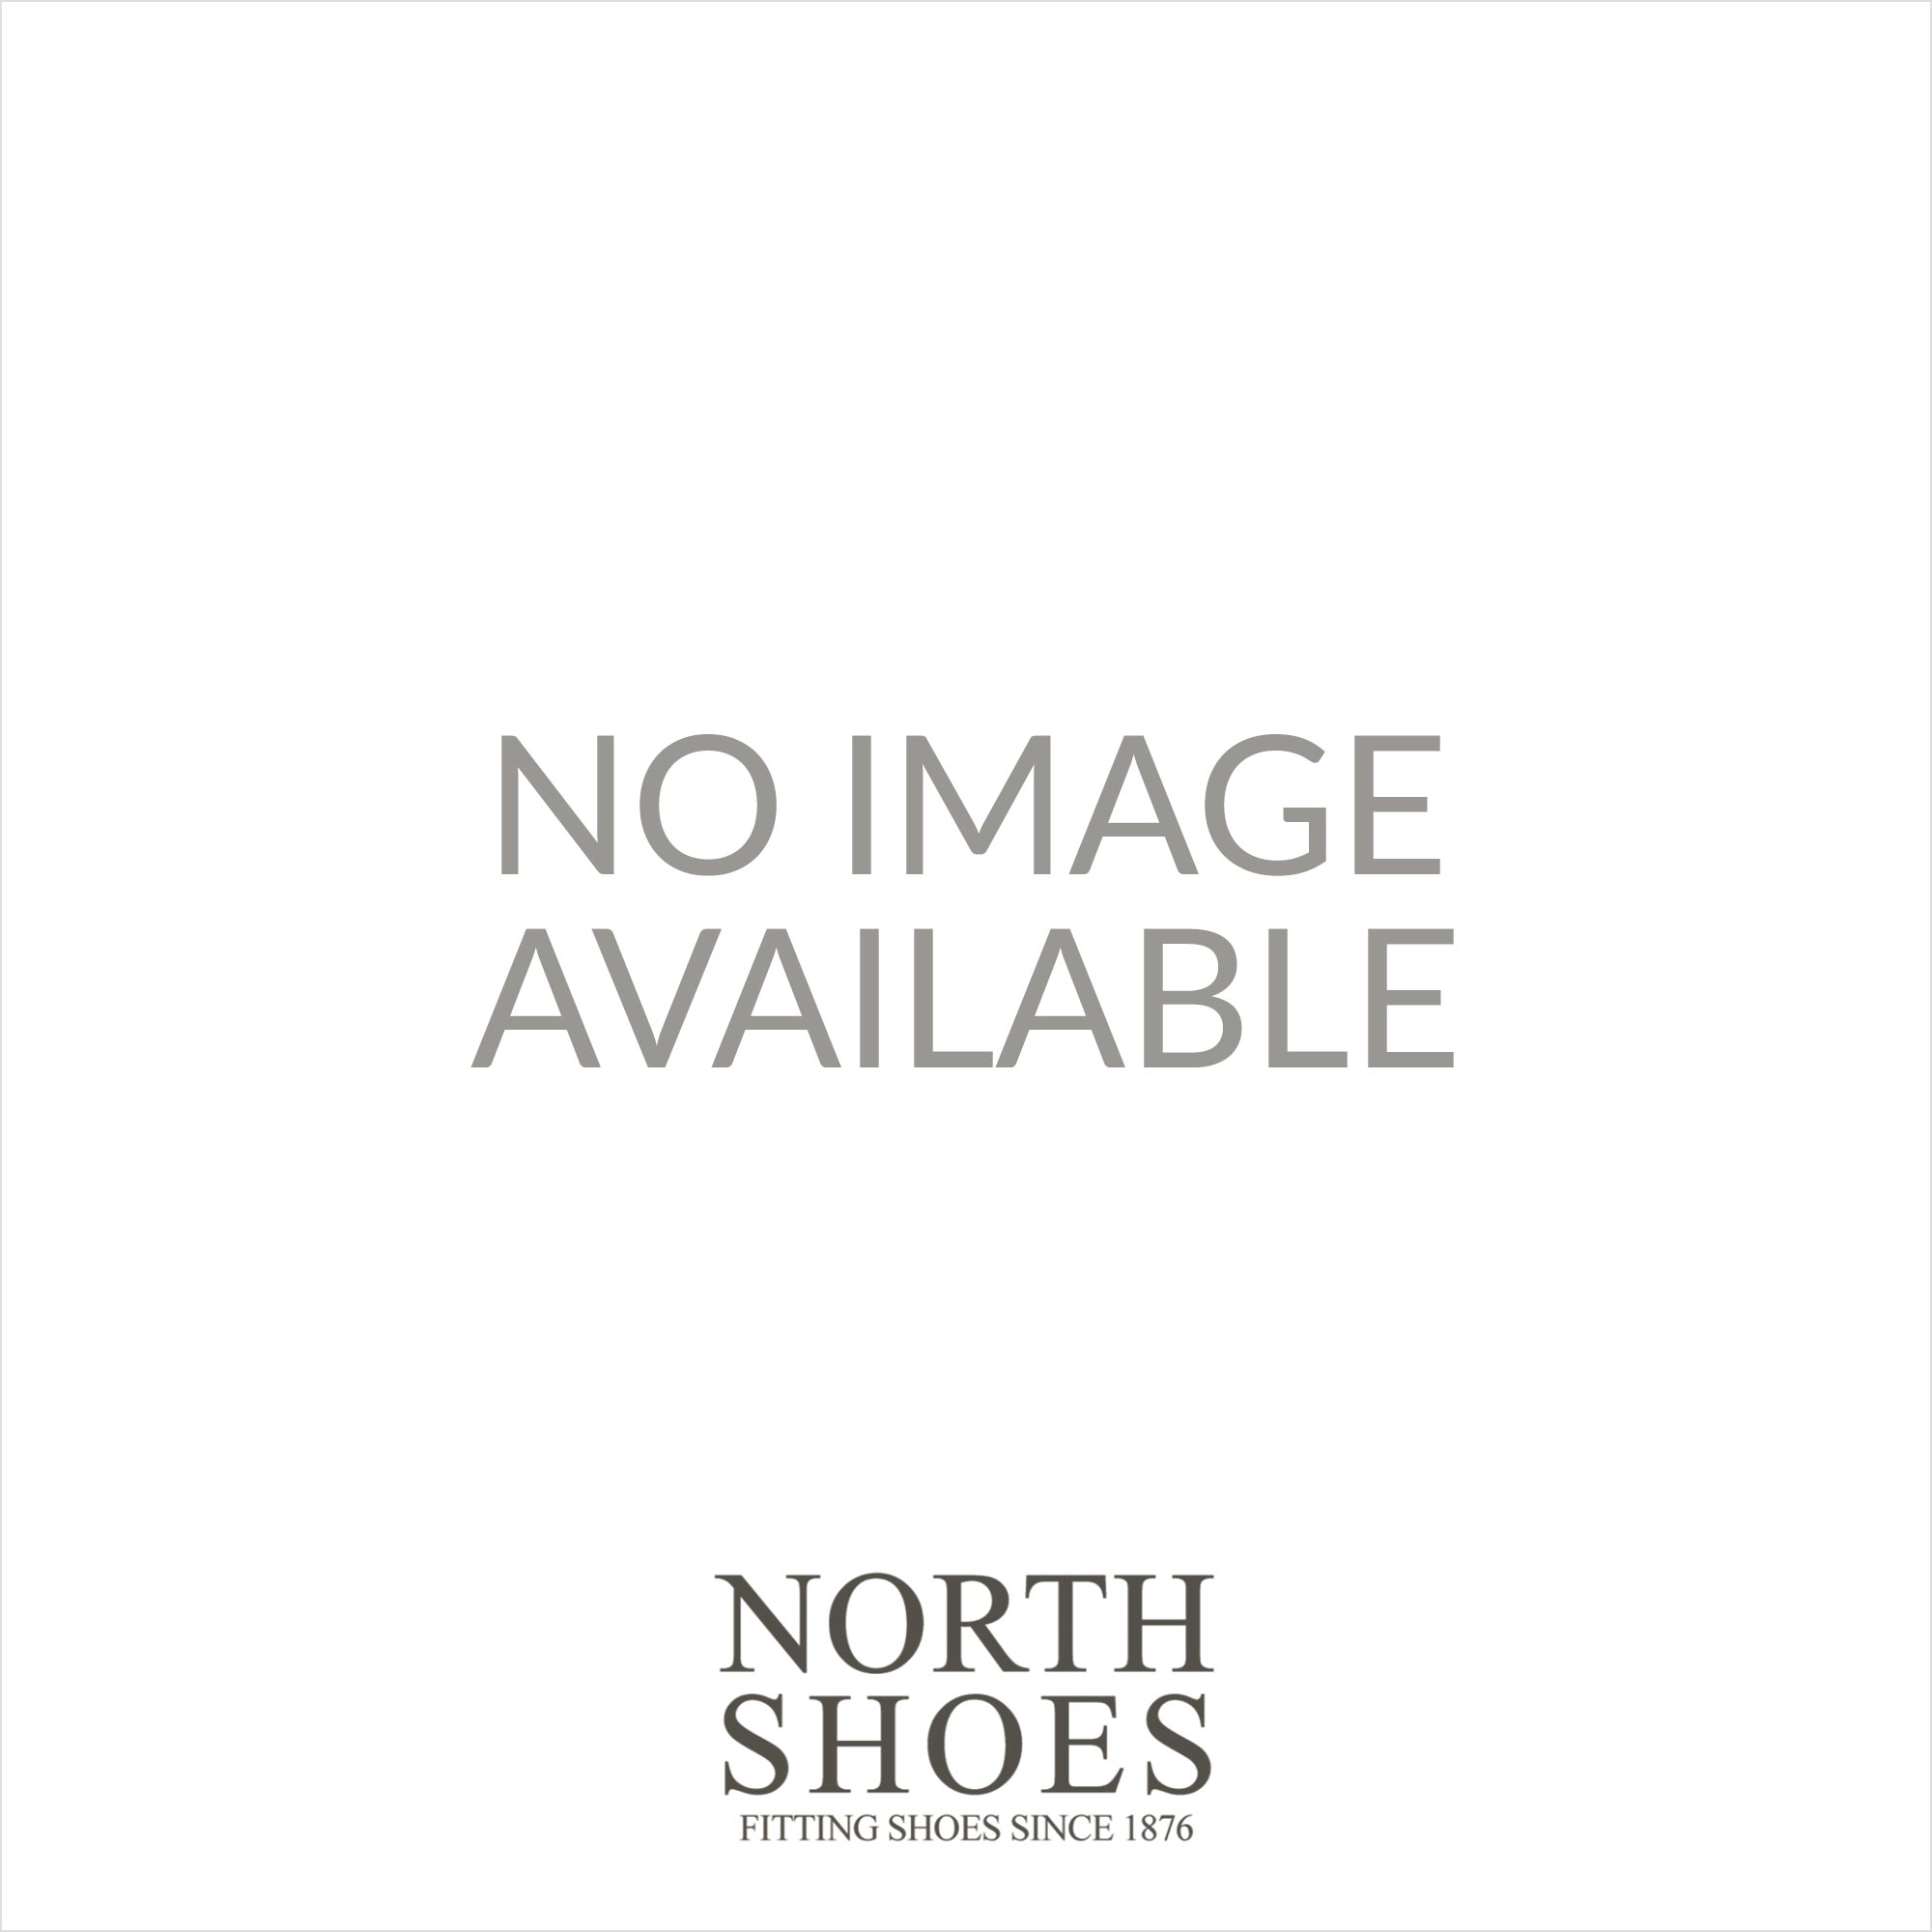 257f0a77596 Clarks Cozily Comfy Navy Felt Womens Moccasin Slipper - Clarks from North  Shoes UK